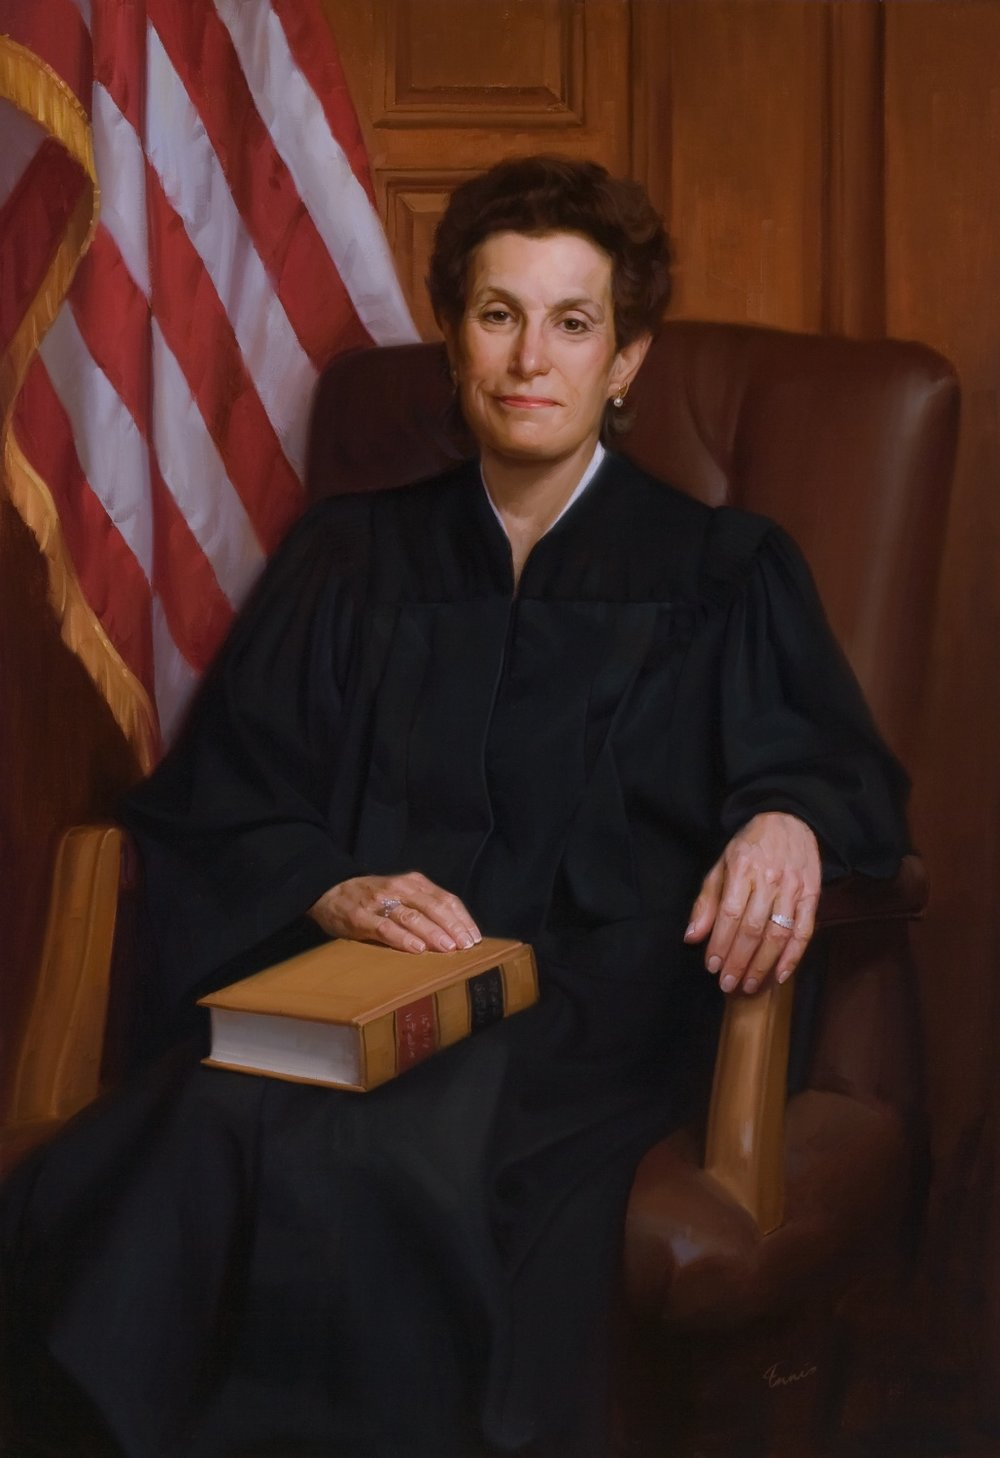 Justice Judy Cowin